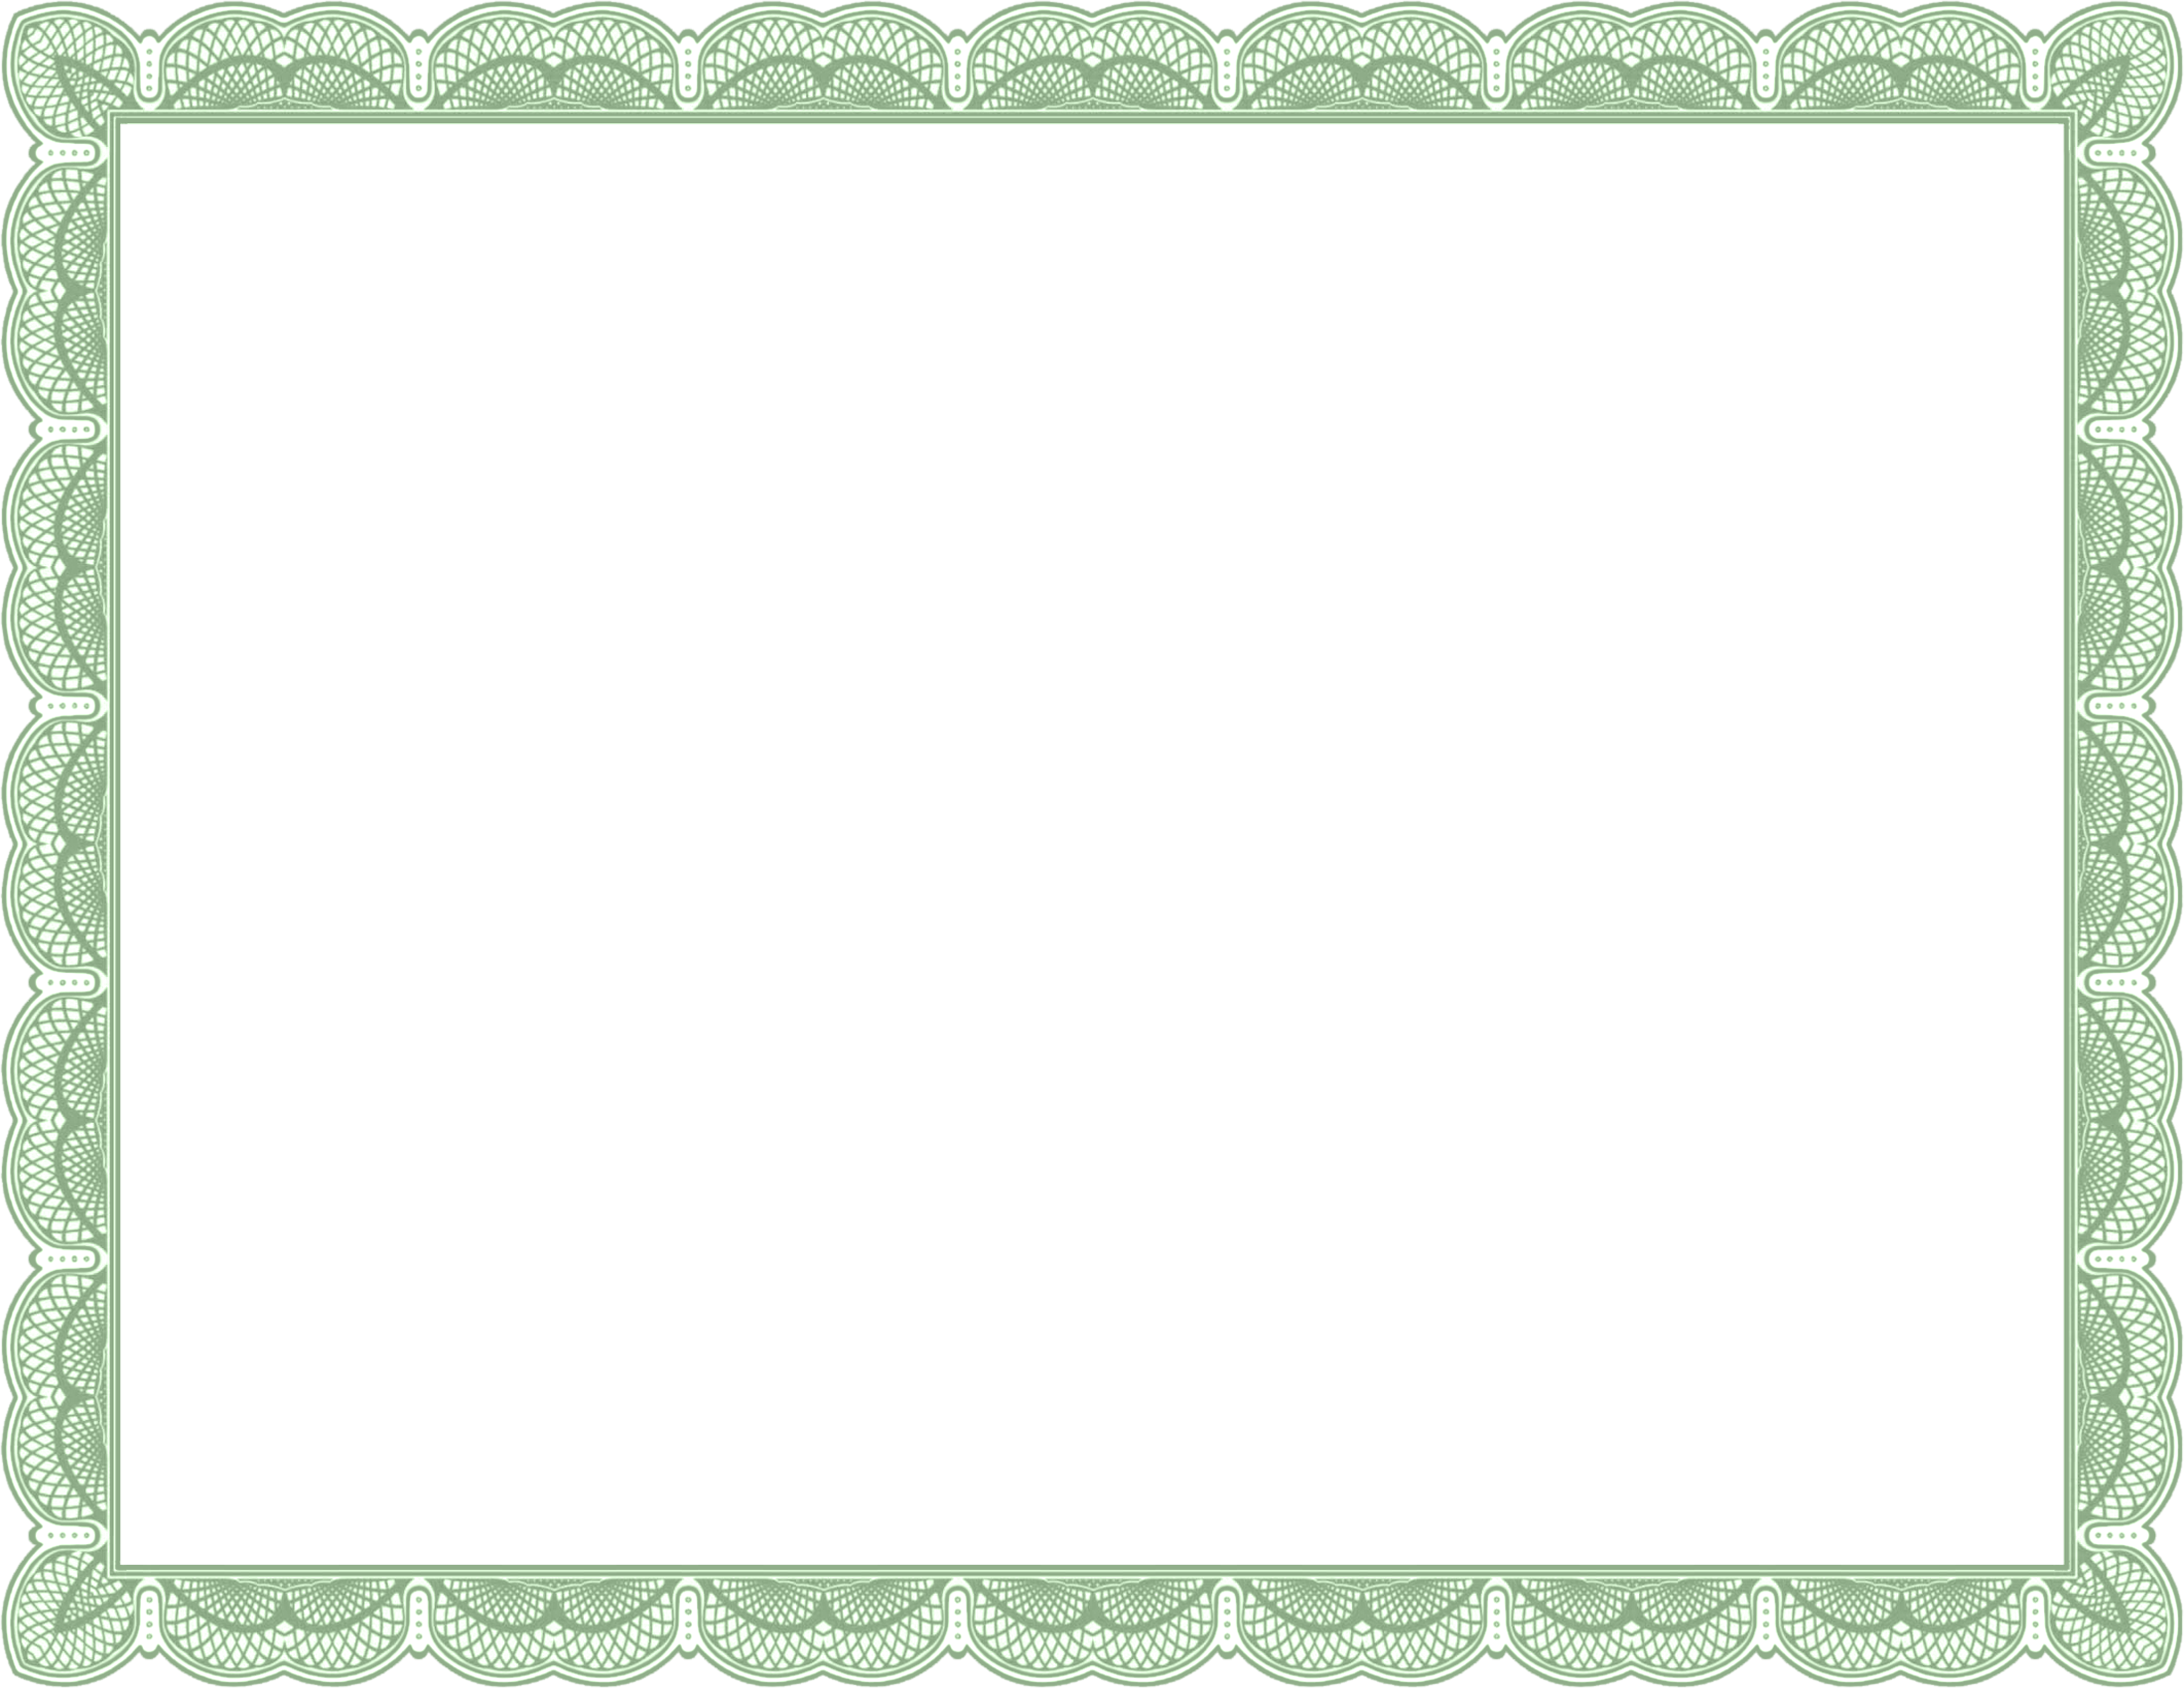 Certificate border png. Transparent file my designs